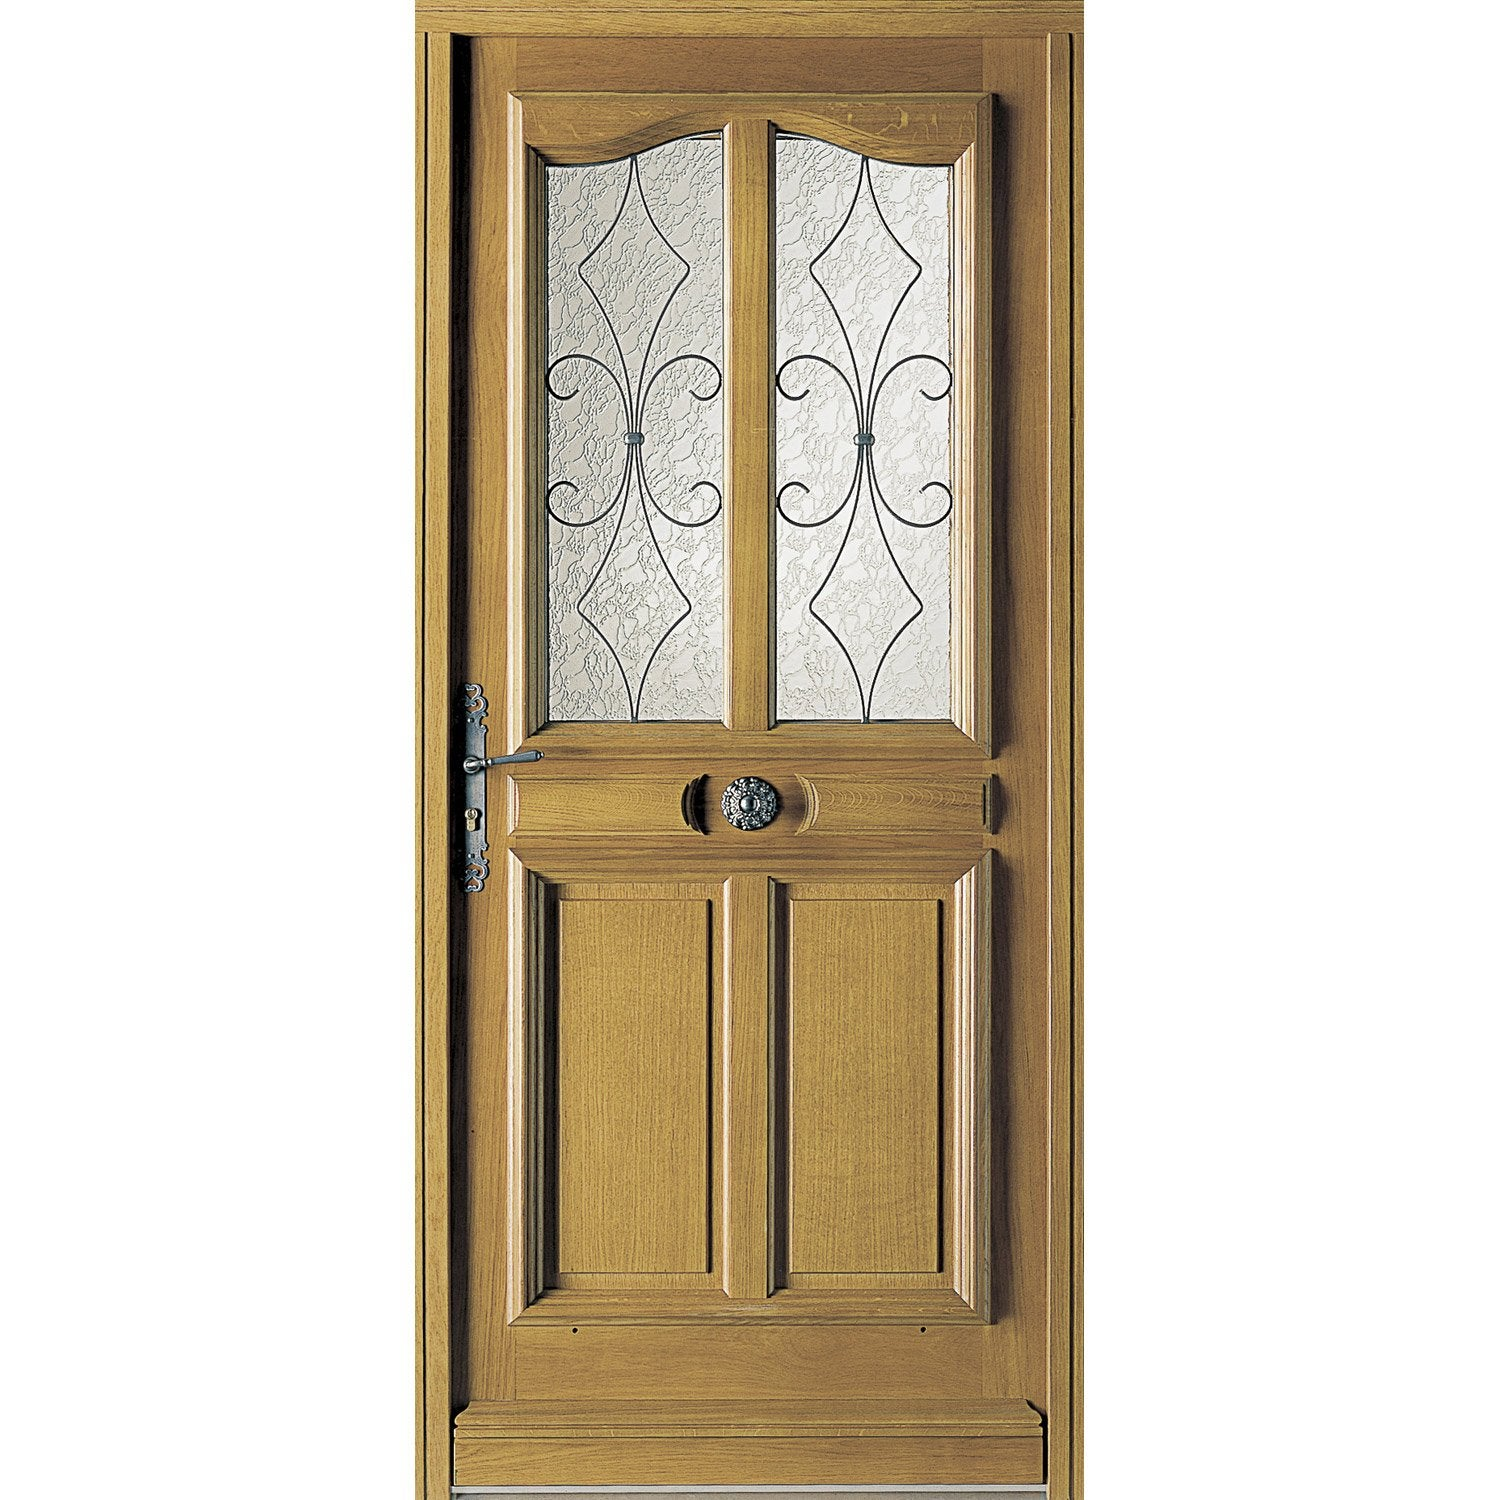 Porte d 39 entr e sur mesure en bois courchevel excellence for Carrelage porte d entree